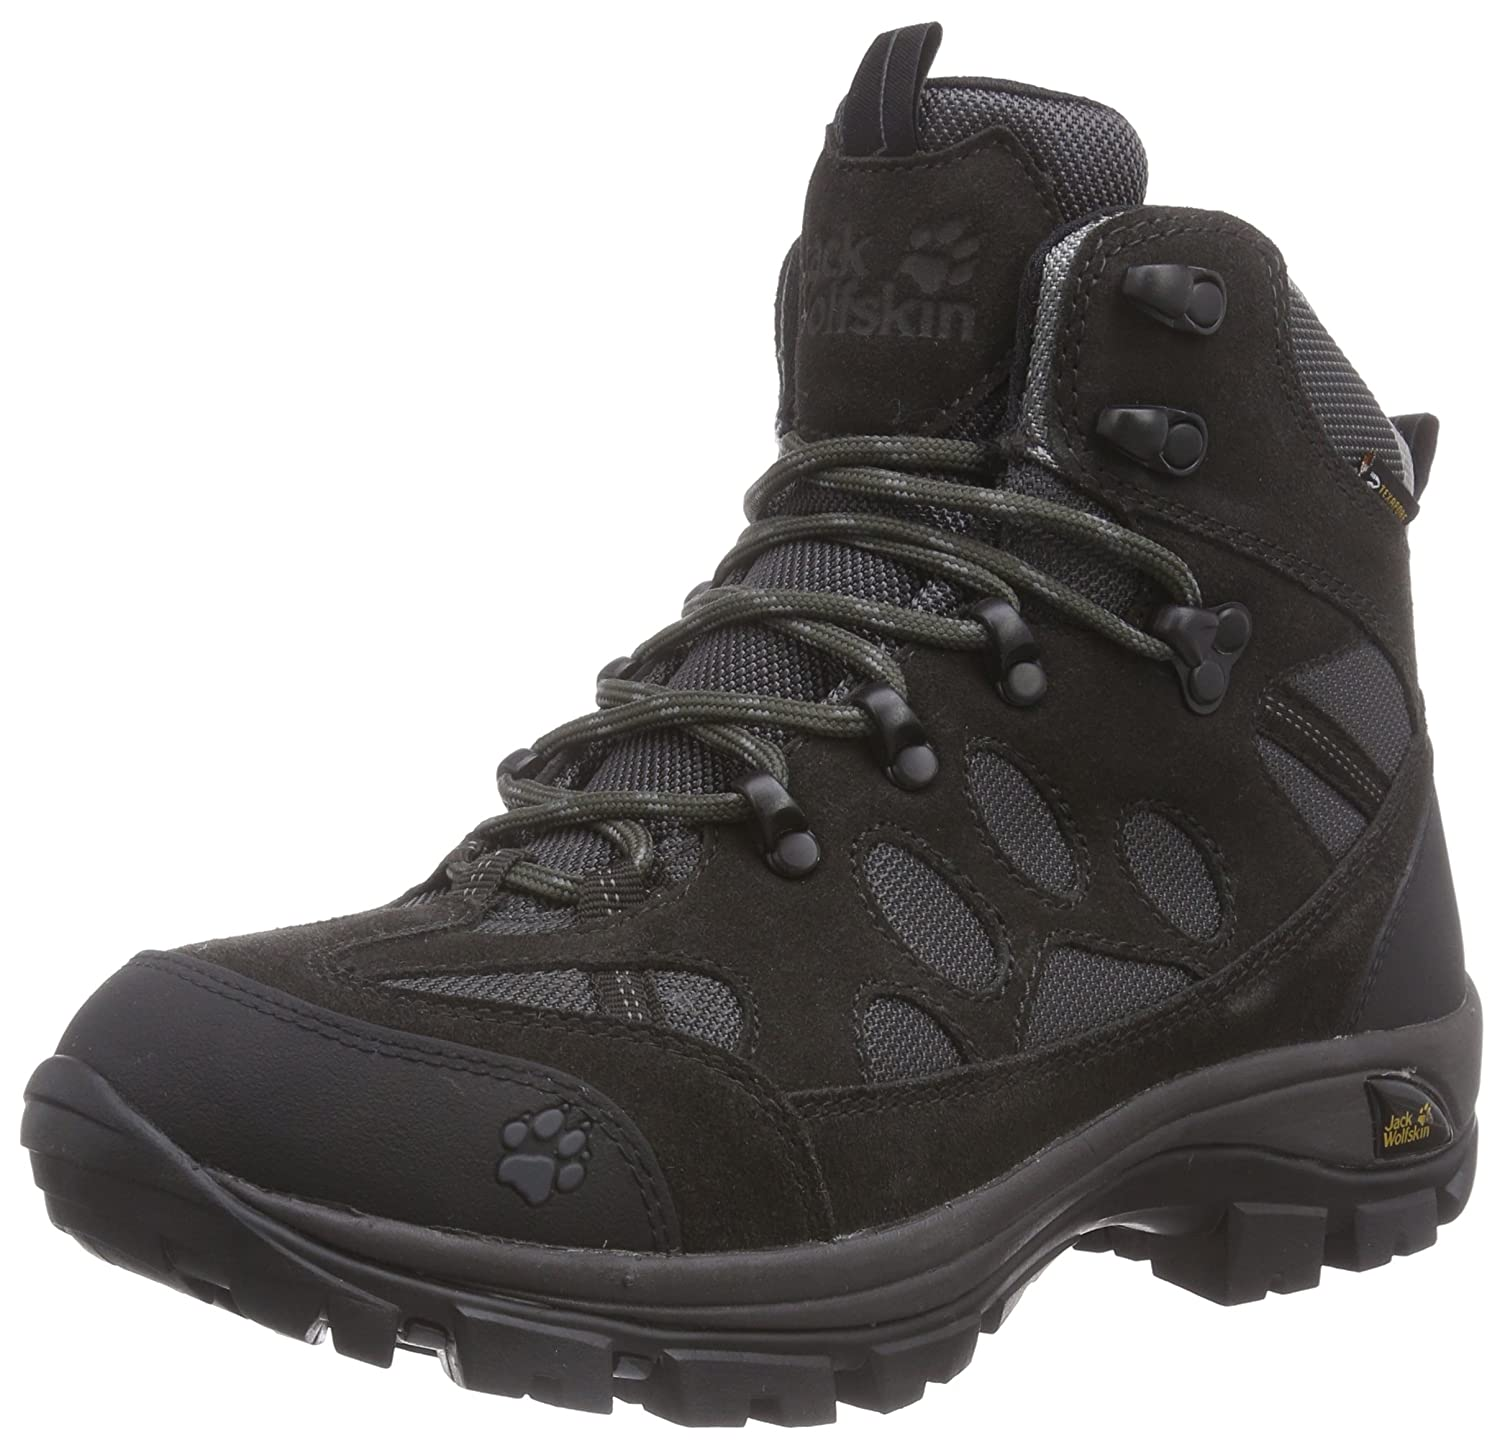 Jack Wolfskin Women's All Terrain 7 Texapore Mid W Hiking Boot B00TLAID7M 10 D US|Shadow Black